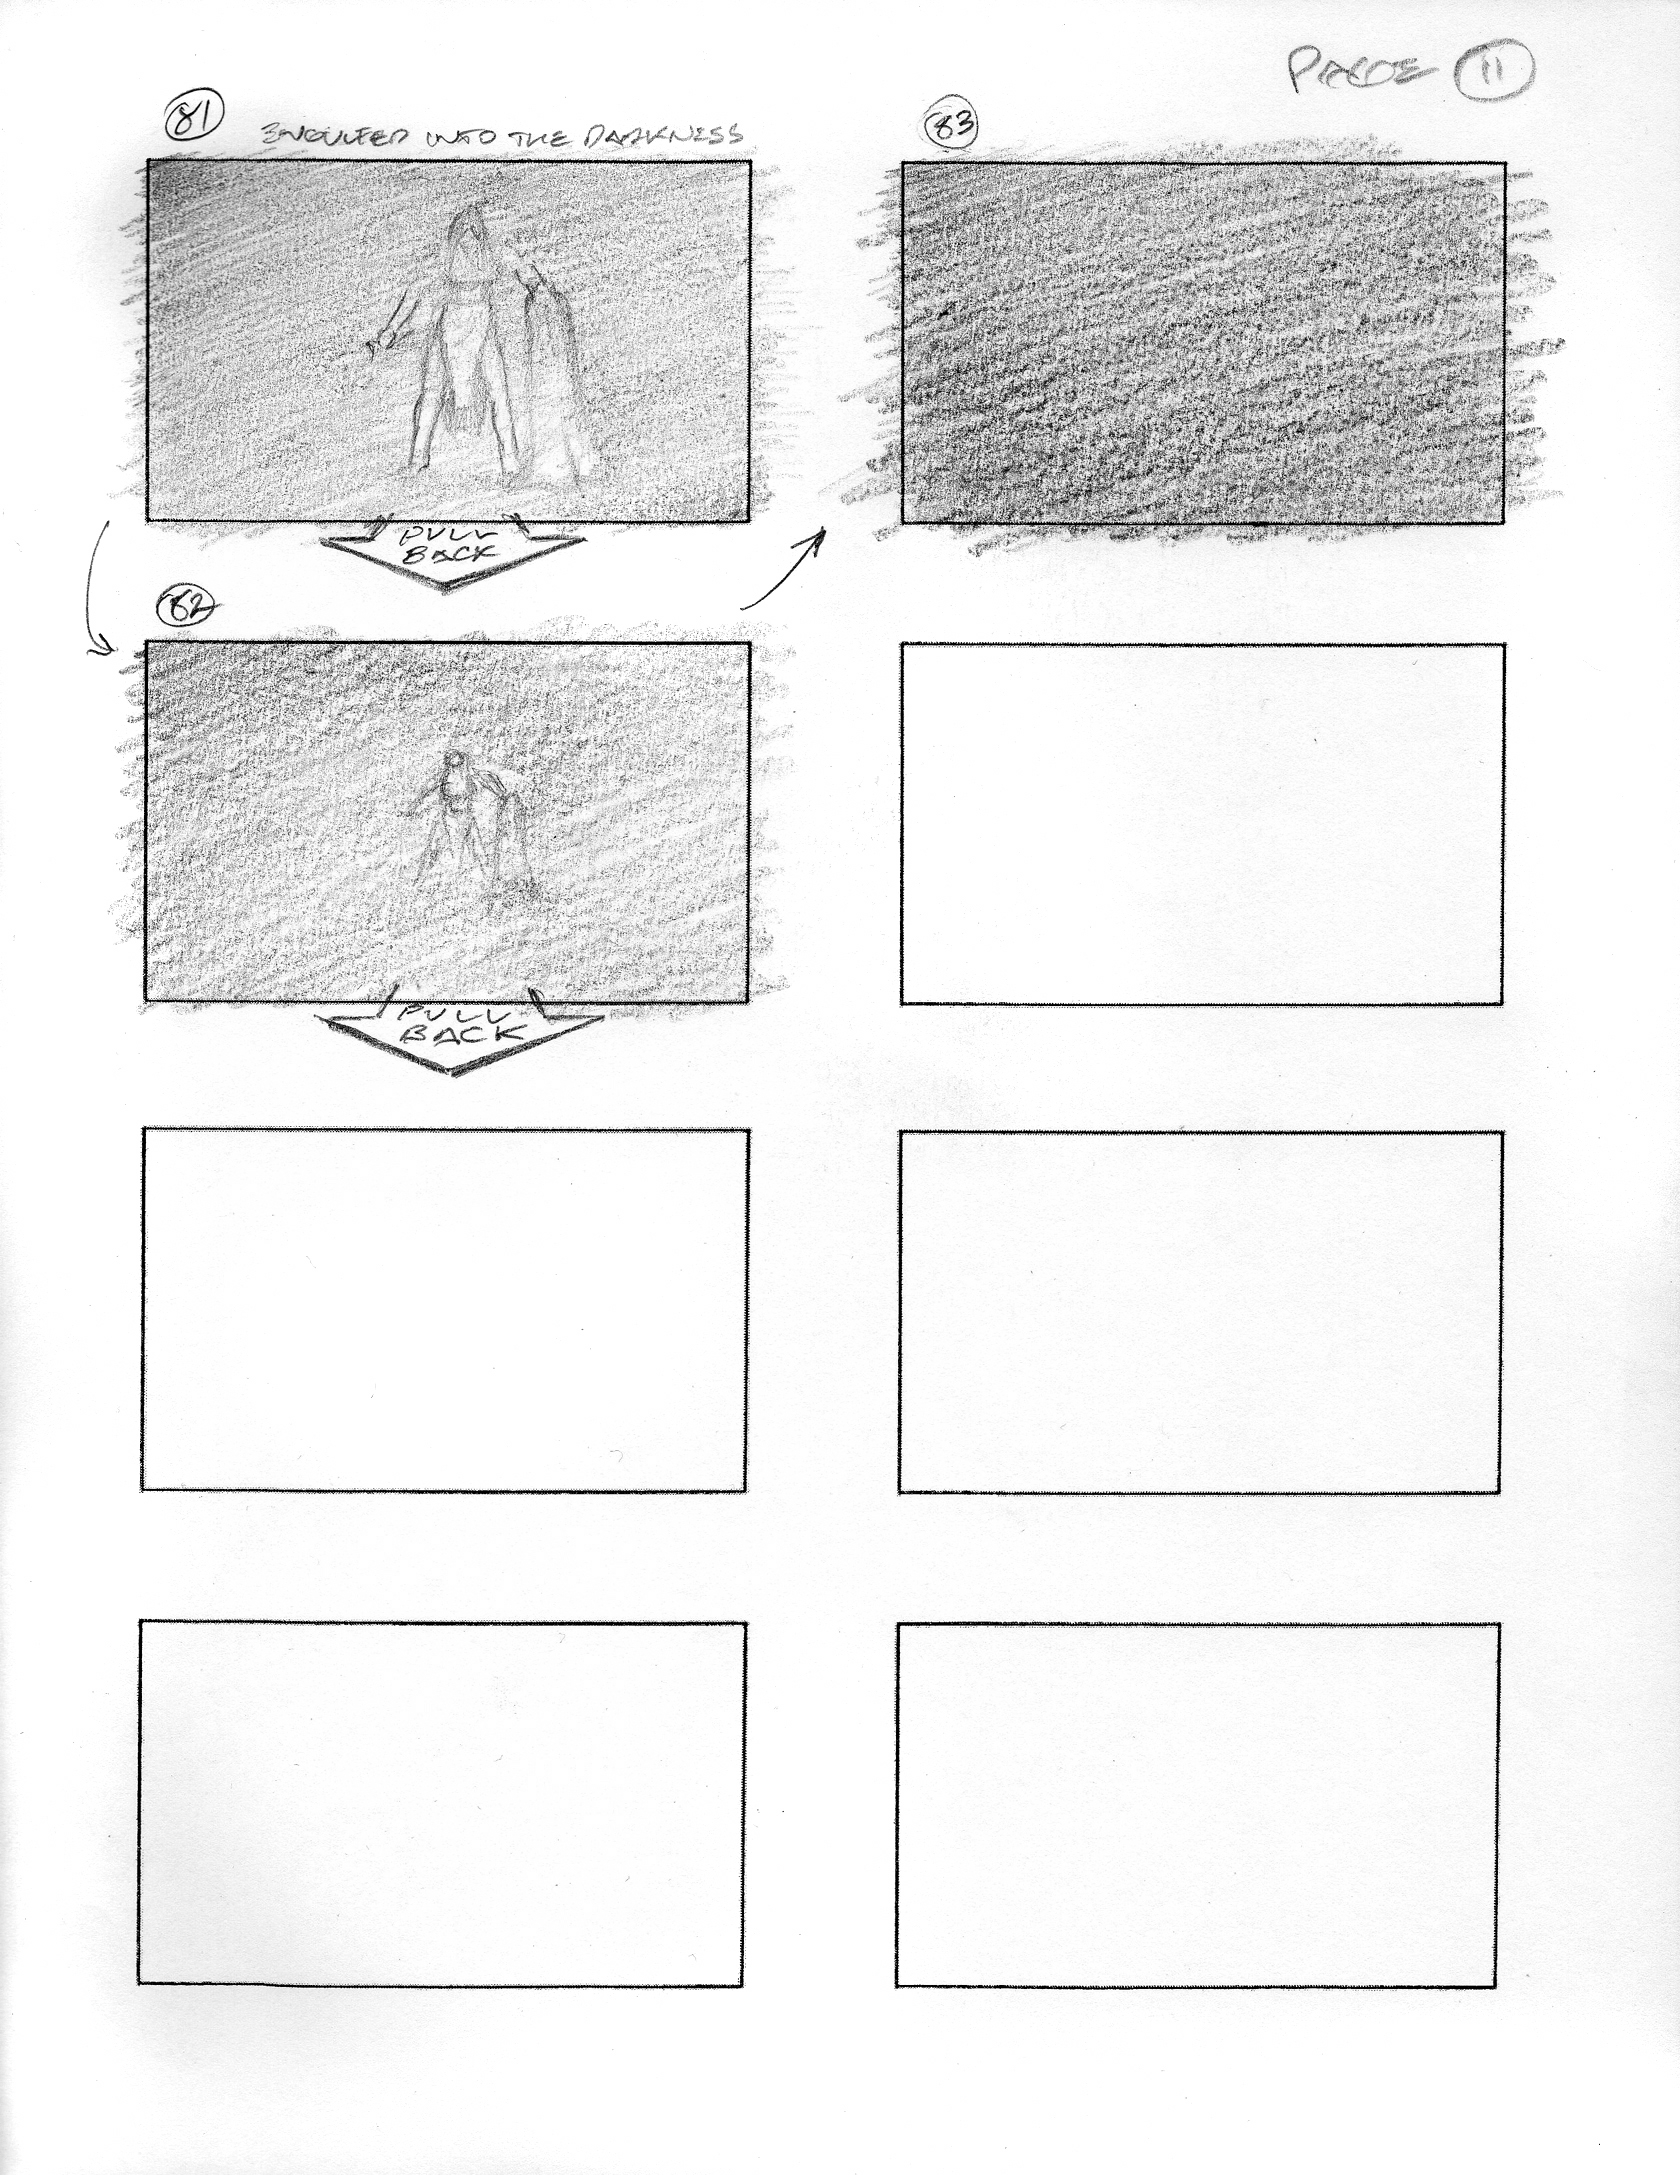 Star Wars Short Boards page 11  054